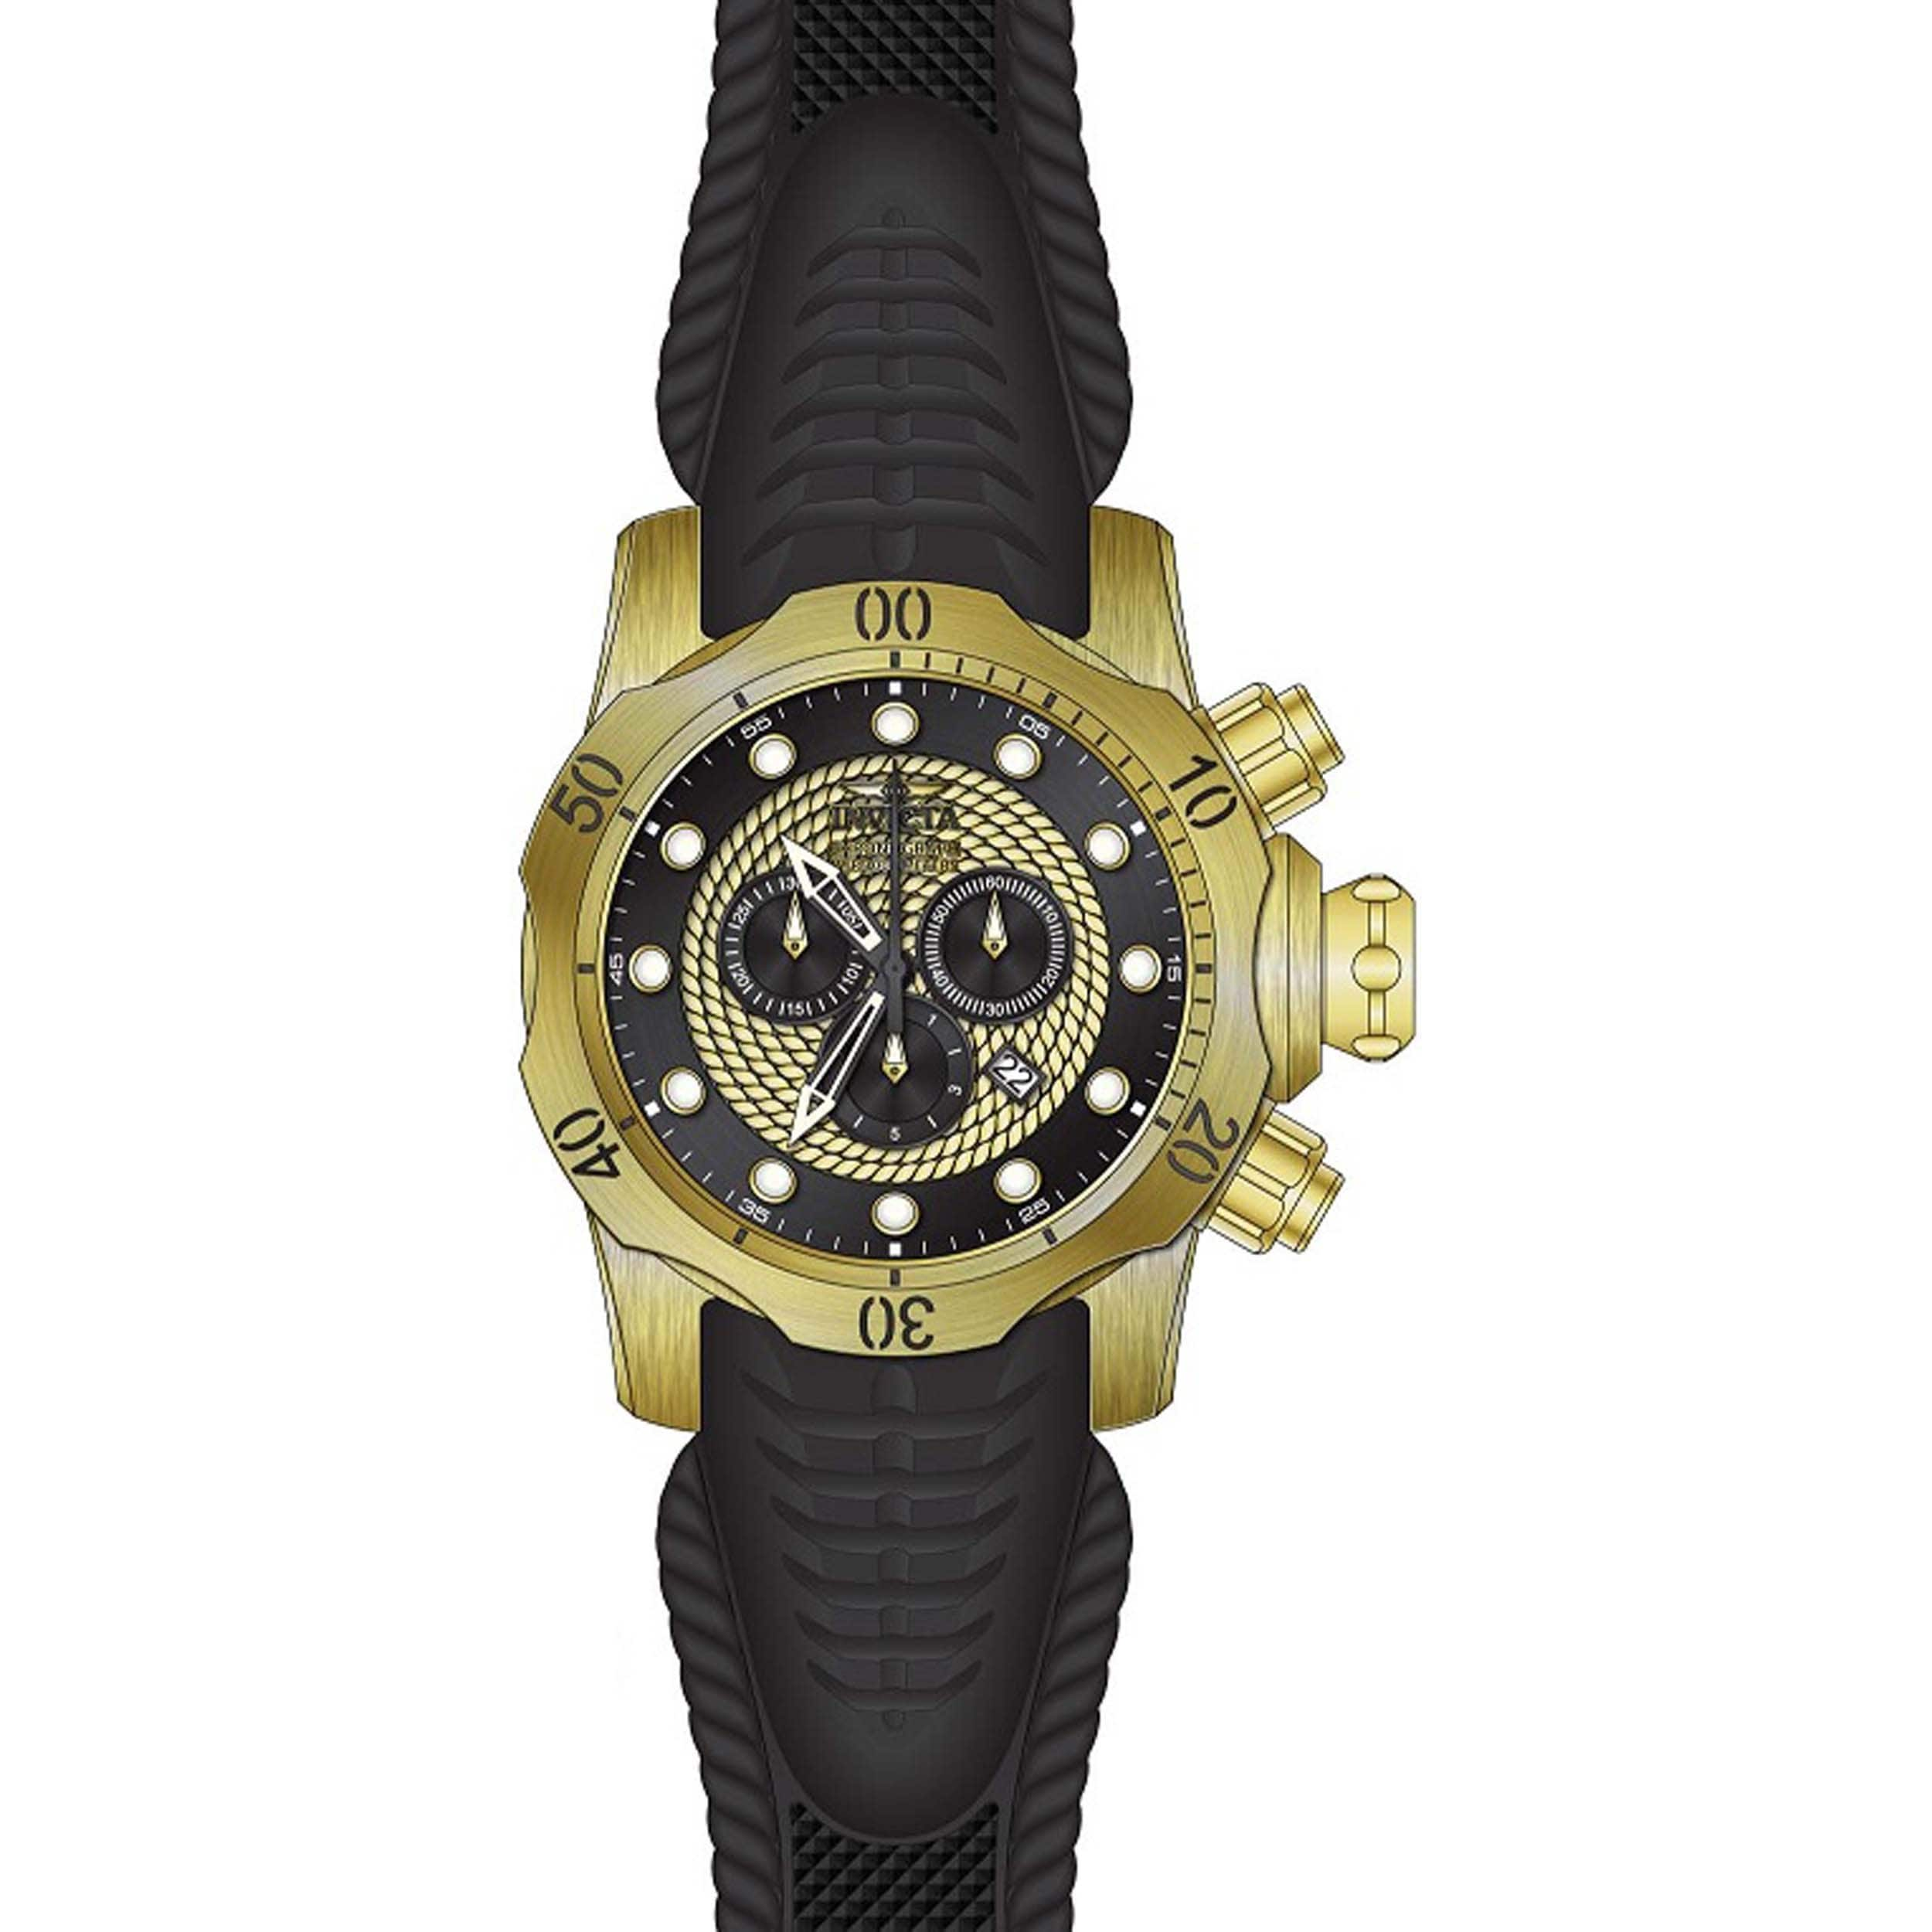 768d5d1a7 Shop Invicta Men's 20443 Venom Quartz Chronograph Black, Gold Dial Watch -  Free Shipping Today - Overstock - 11933596